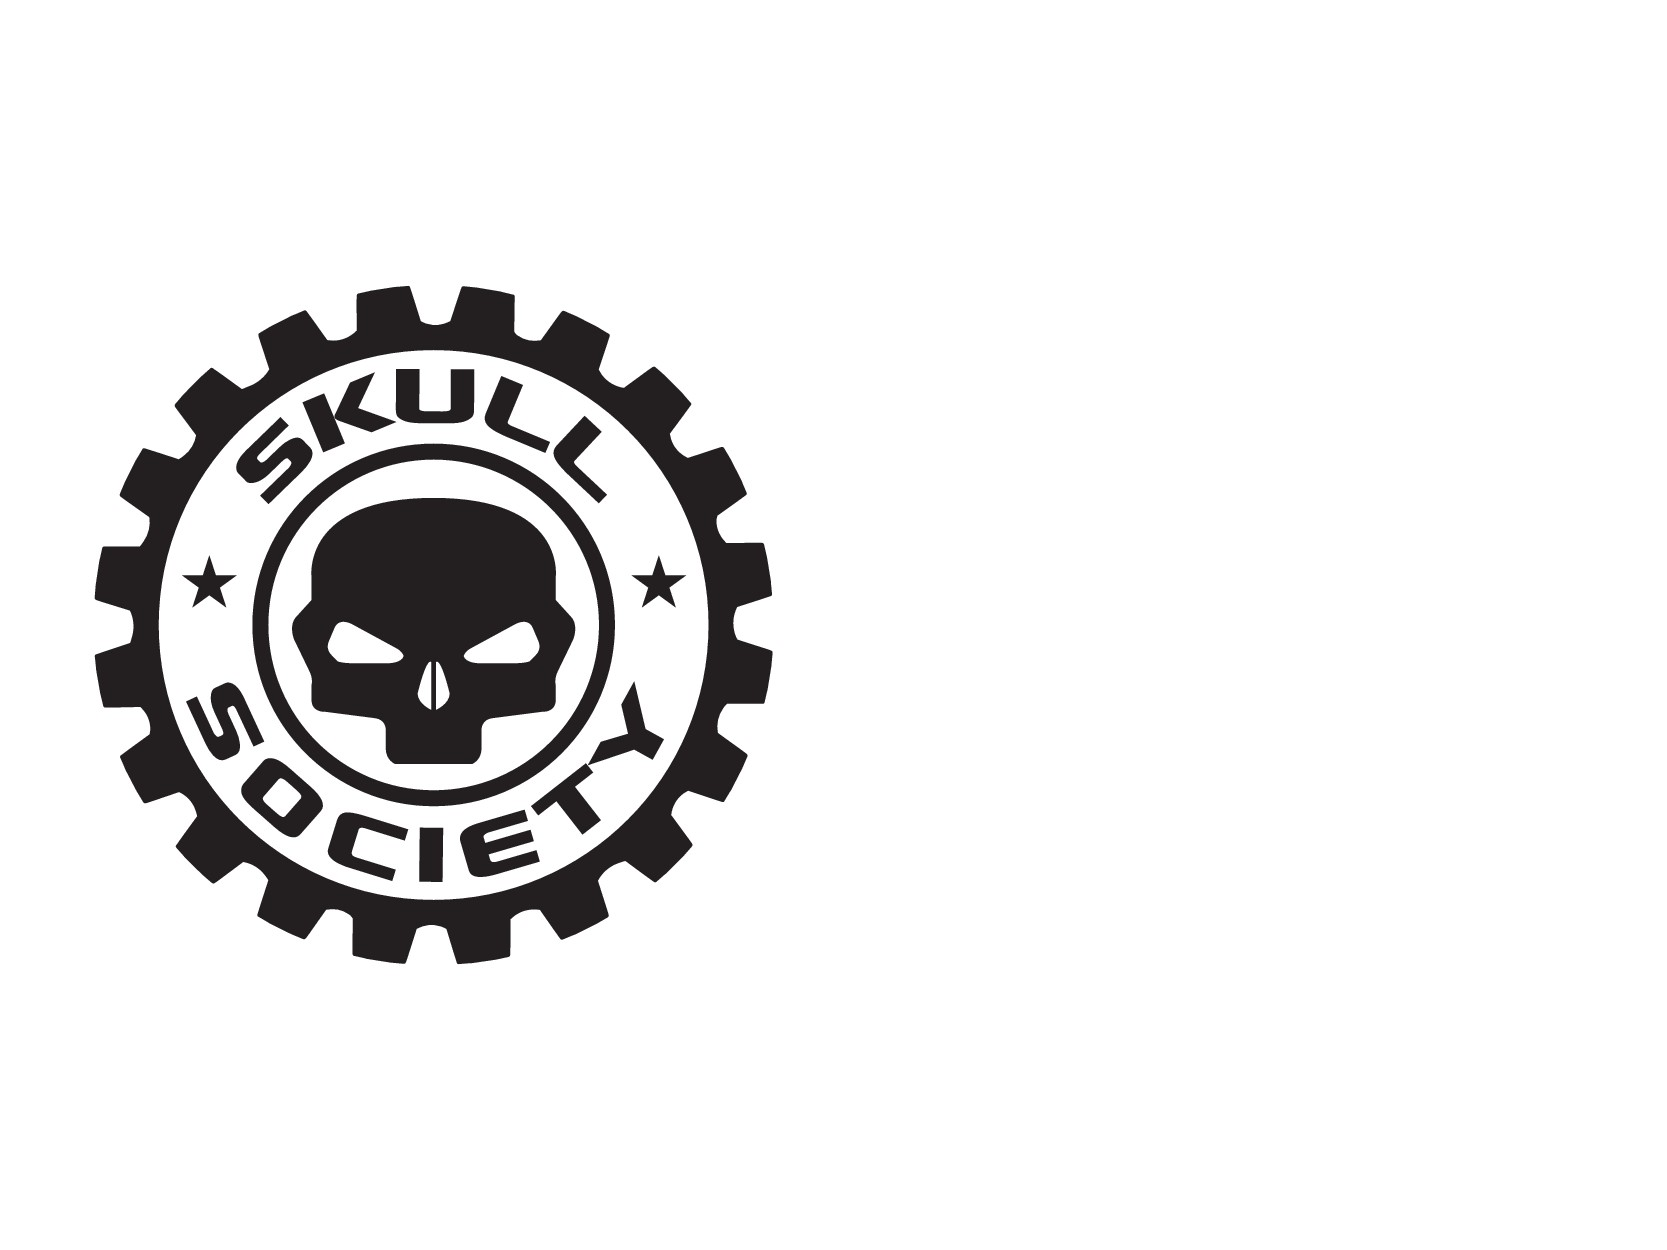 Re-design Logo For Biker/Motorcycle Apparel Brand